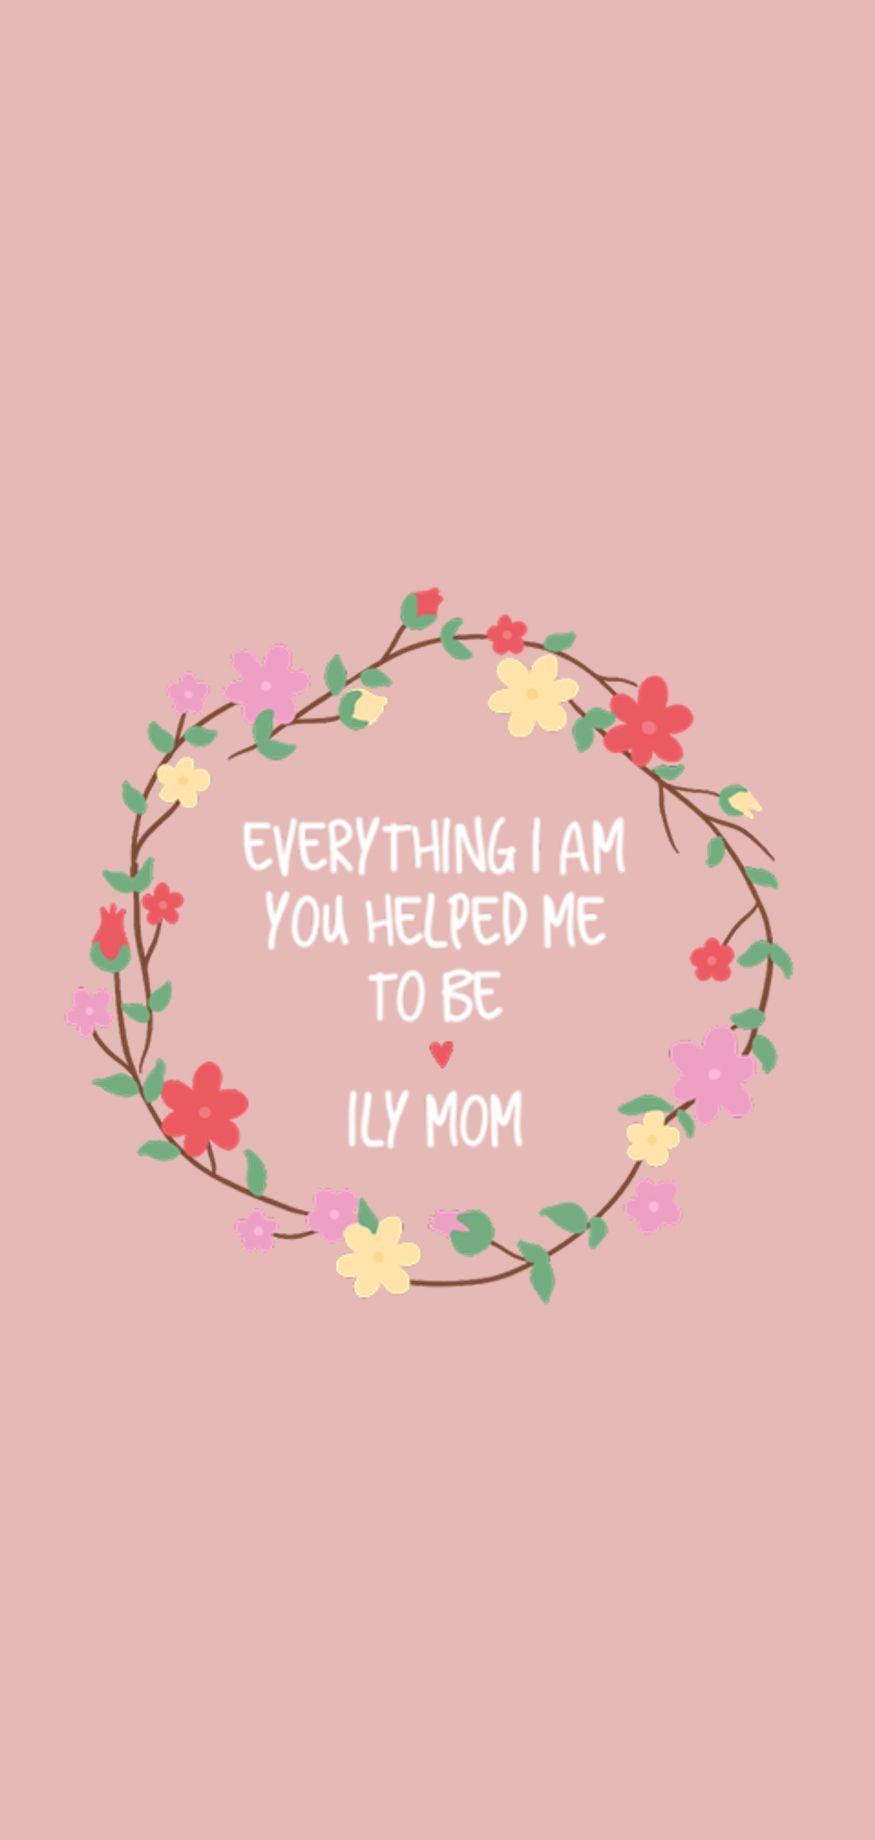 Show Some Love To Your Mom It S Her Day Pink Wallpaper Iphone Cute Wallpaper For Phone Mums Wallpaper